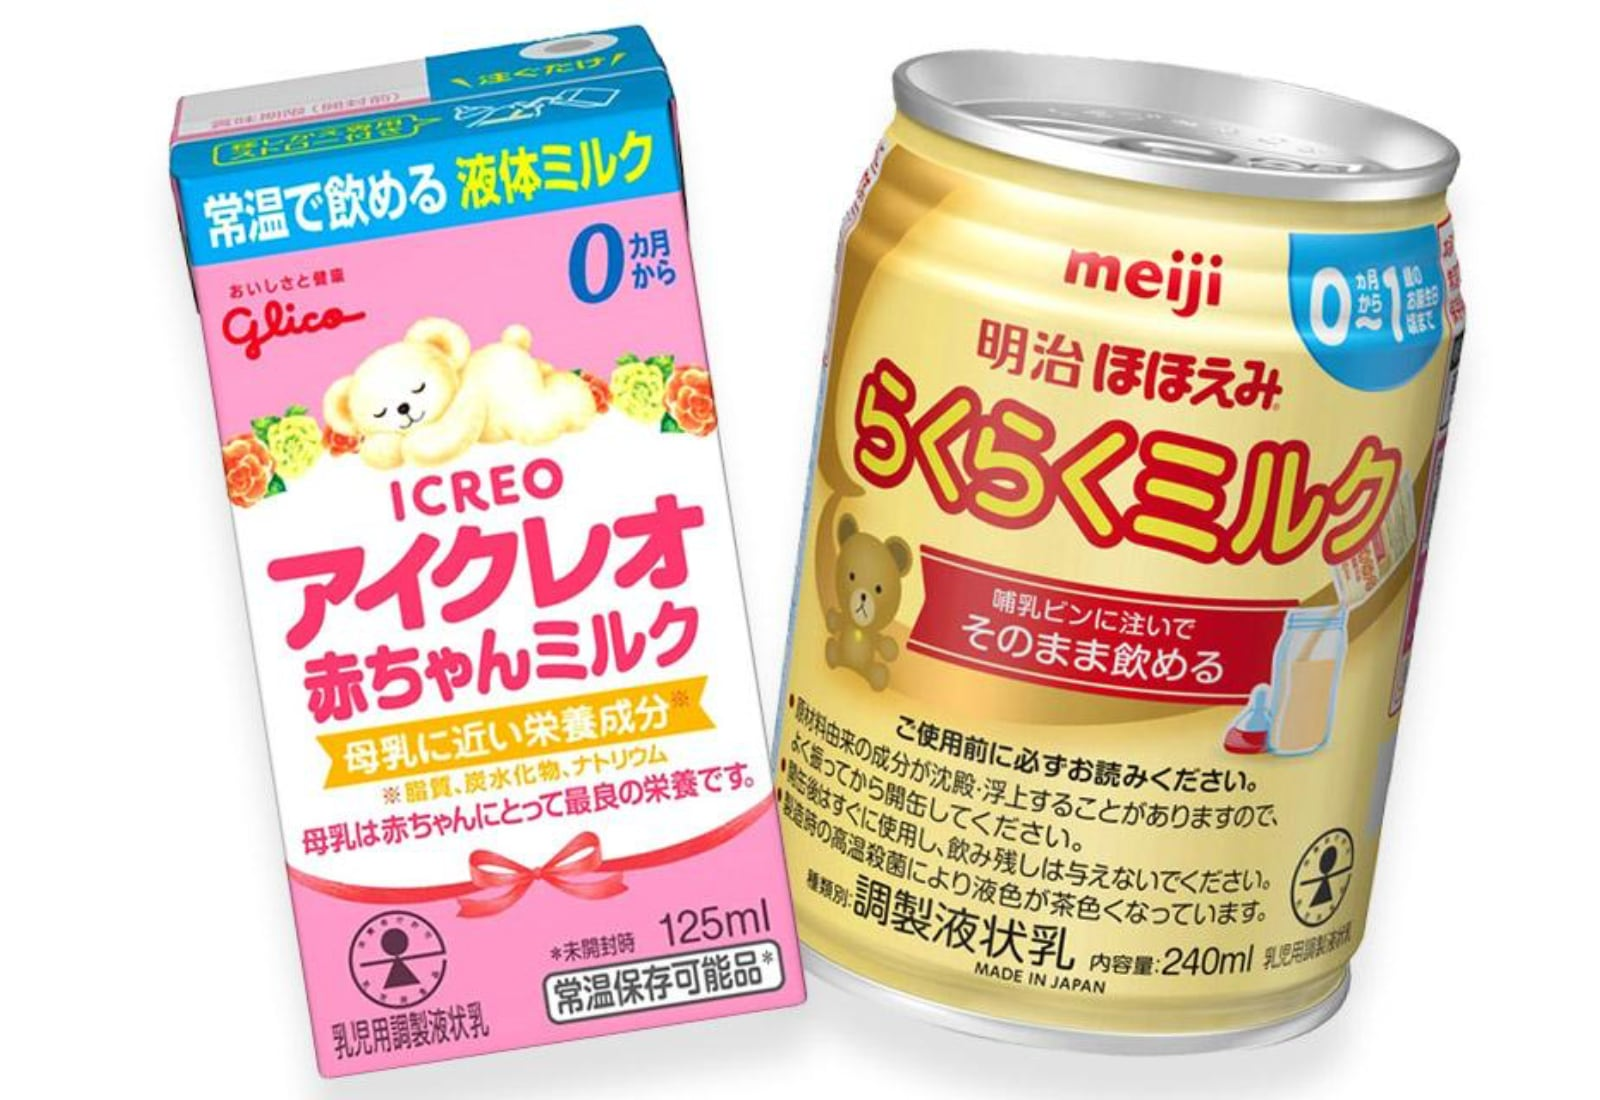 Glico and Meiji Liquid Baby Formula